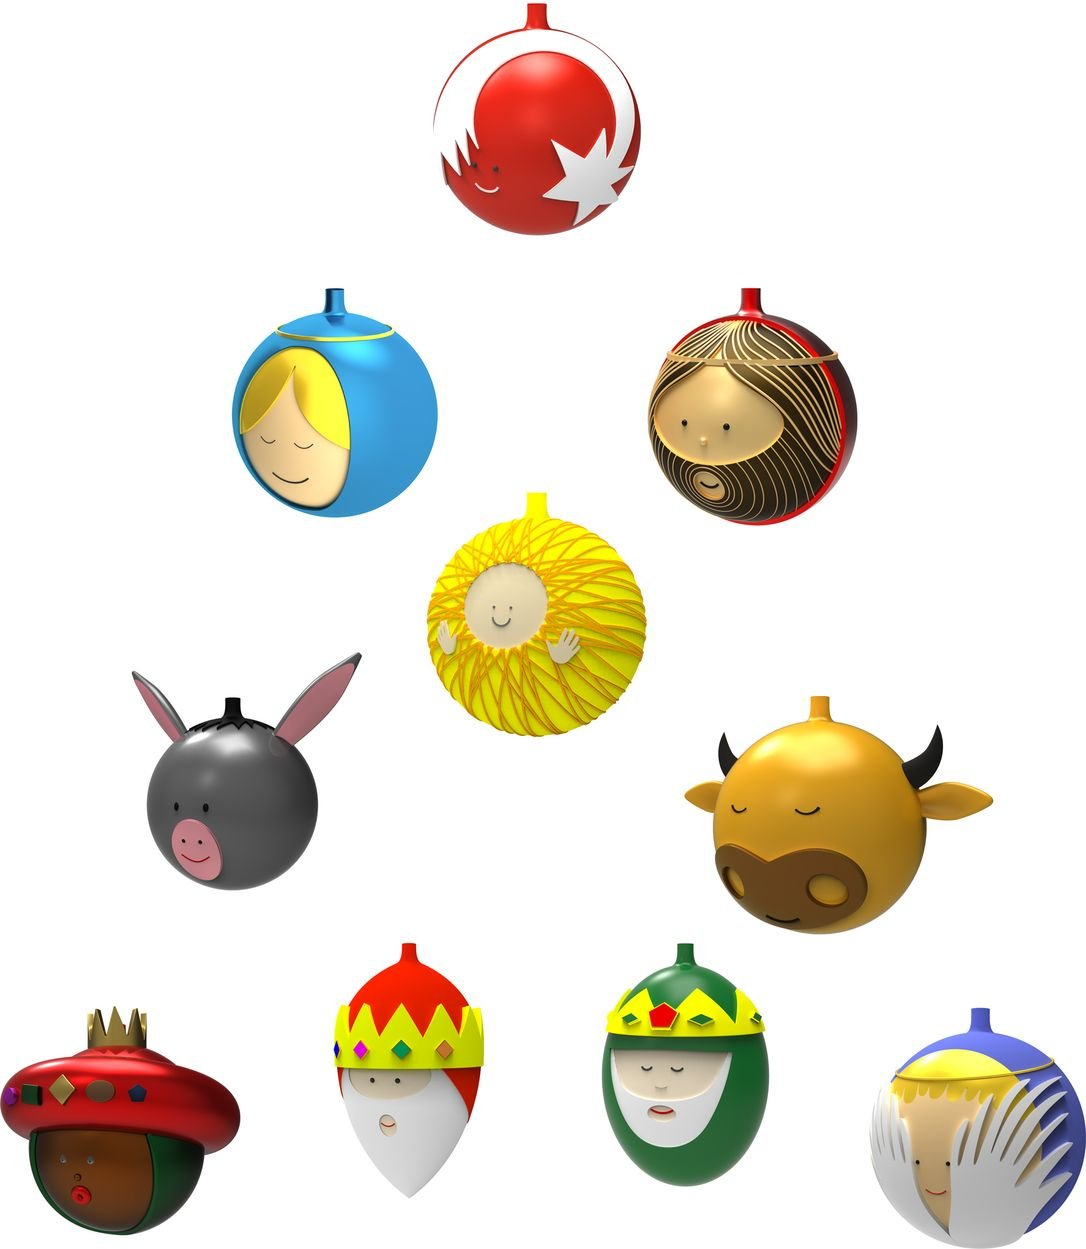 Alessi Amj13S10 Christmas Ornaments In Blown Glass, Set of 10